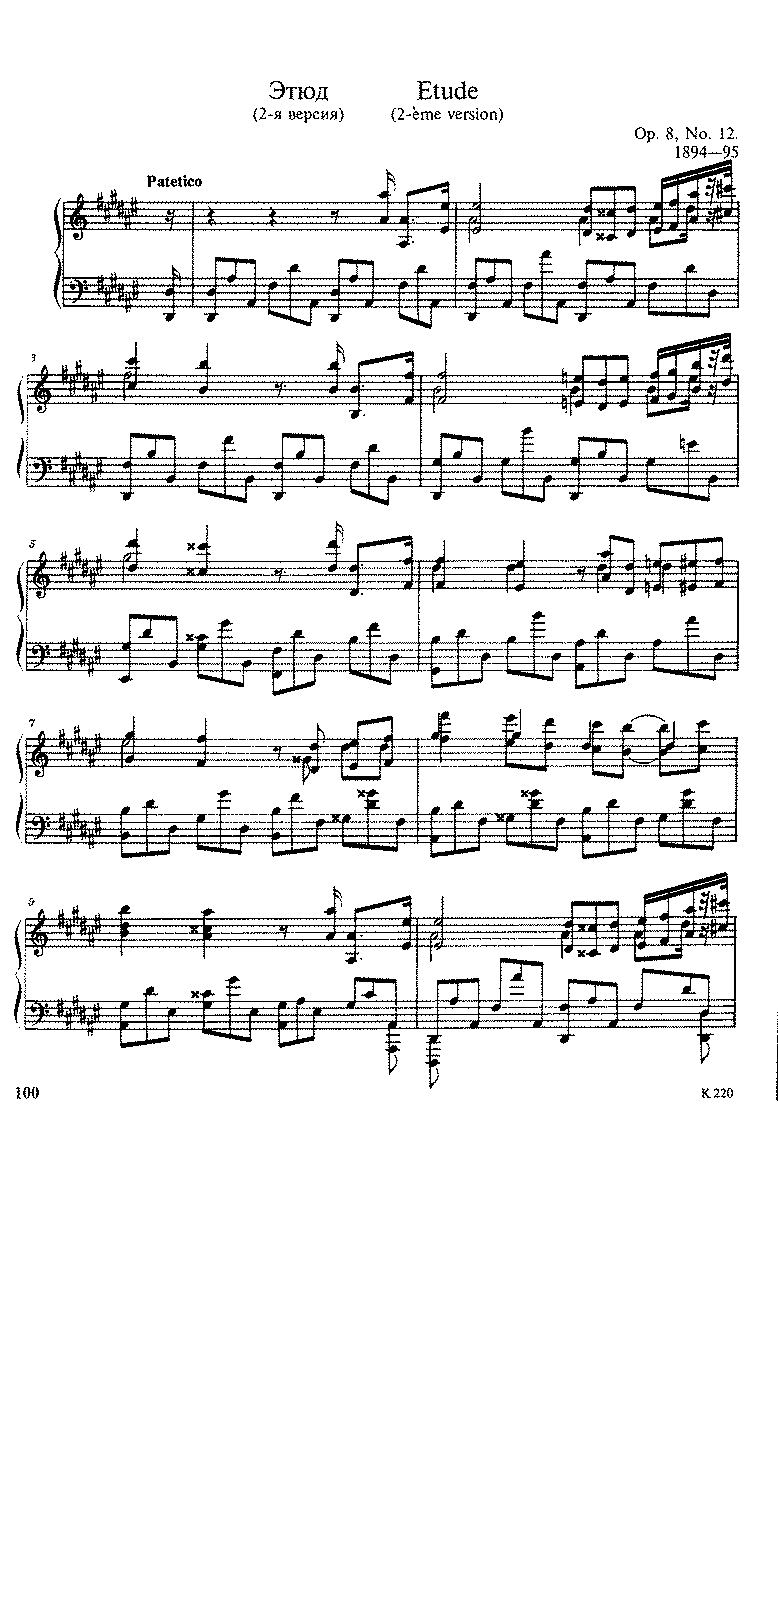 Scriabin - Op.8 No.12 second version.pdf